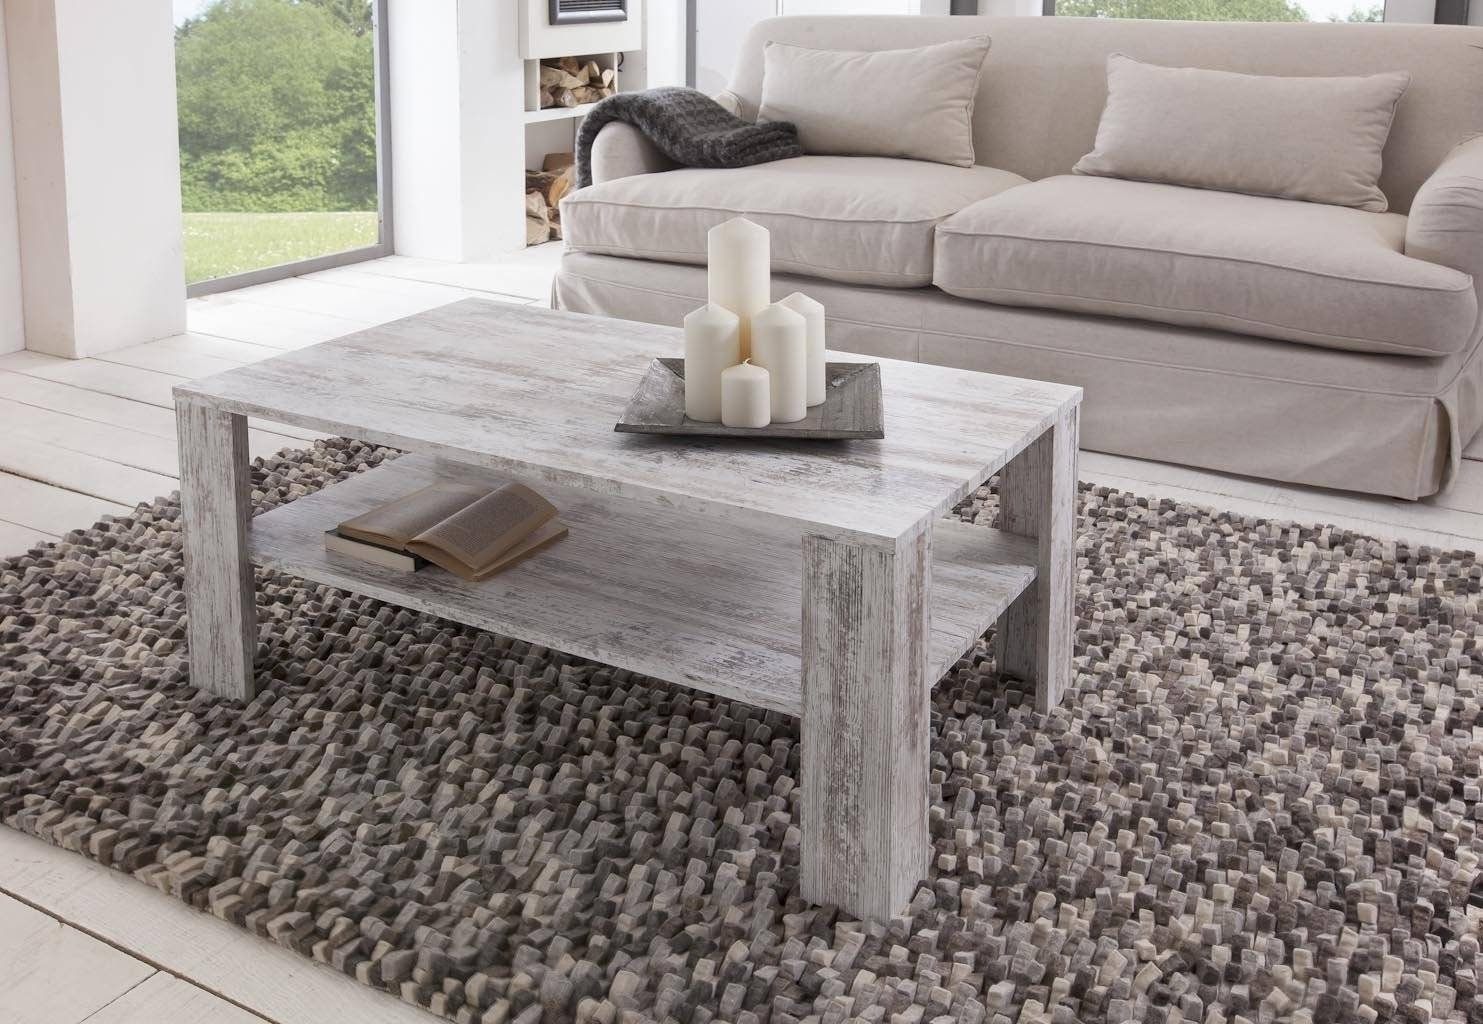 Shabby Chic Coffee Table Furniture Shabby Chic Coffee Table Ideas inside Gray Wood Coffee Tables (Image 29 of 30)